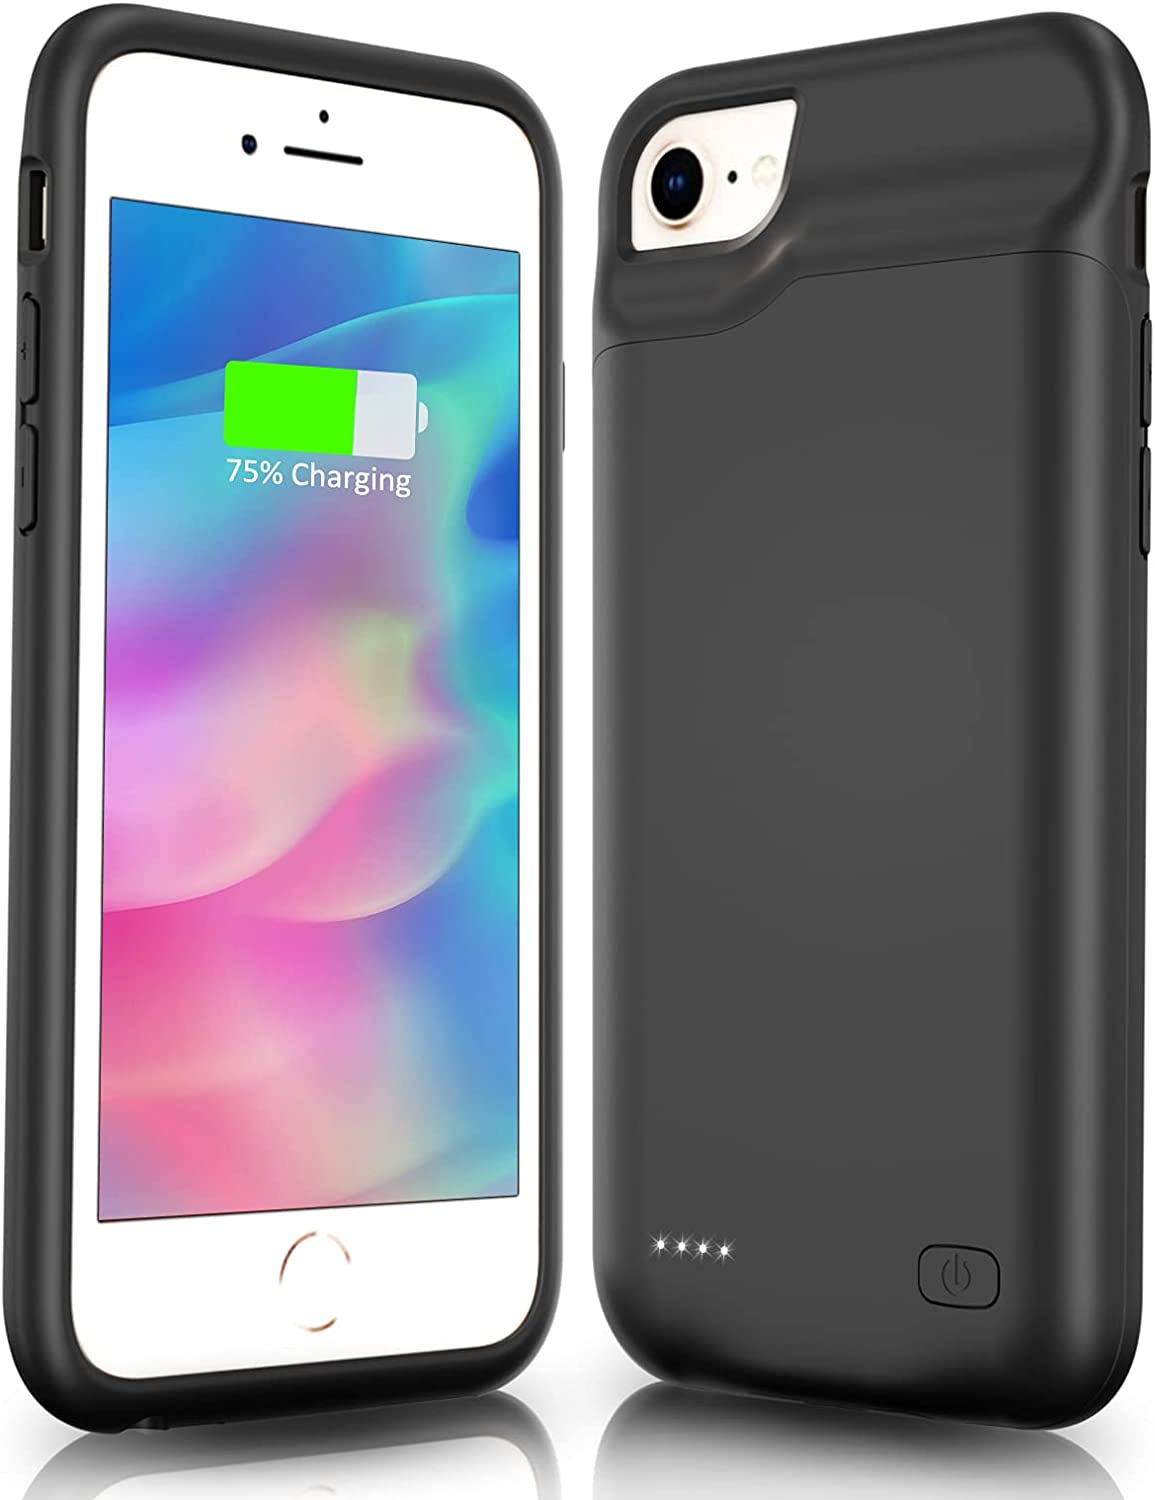 Gladgogo Battery Case for iPhone 6 6s 7 8 SE 2020 (2nd Generation) Slim 6000mAh Charging Case Protective Charger Cover Portable Extended Battery Charger Case for iPhone 6/6s/7/8/SE 2020-4.7 inch